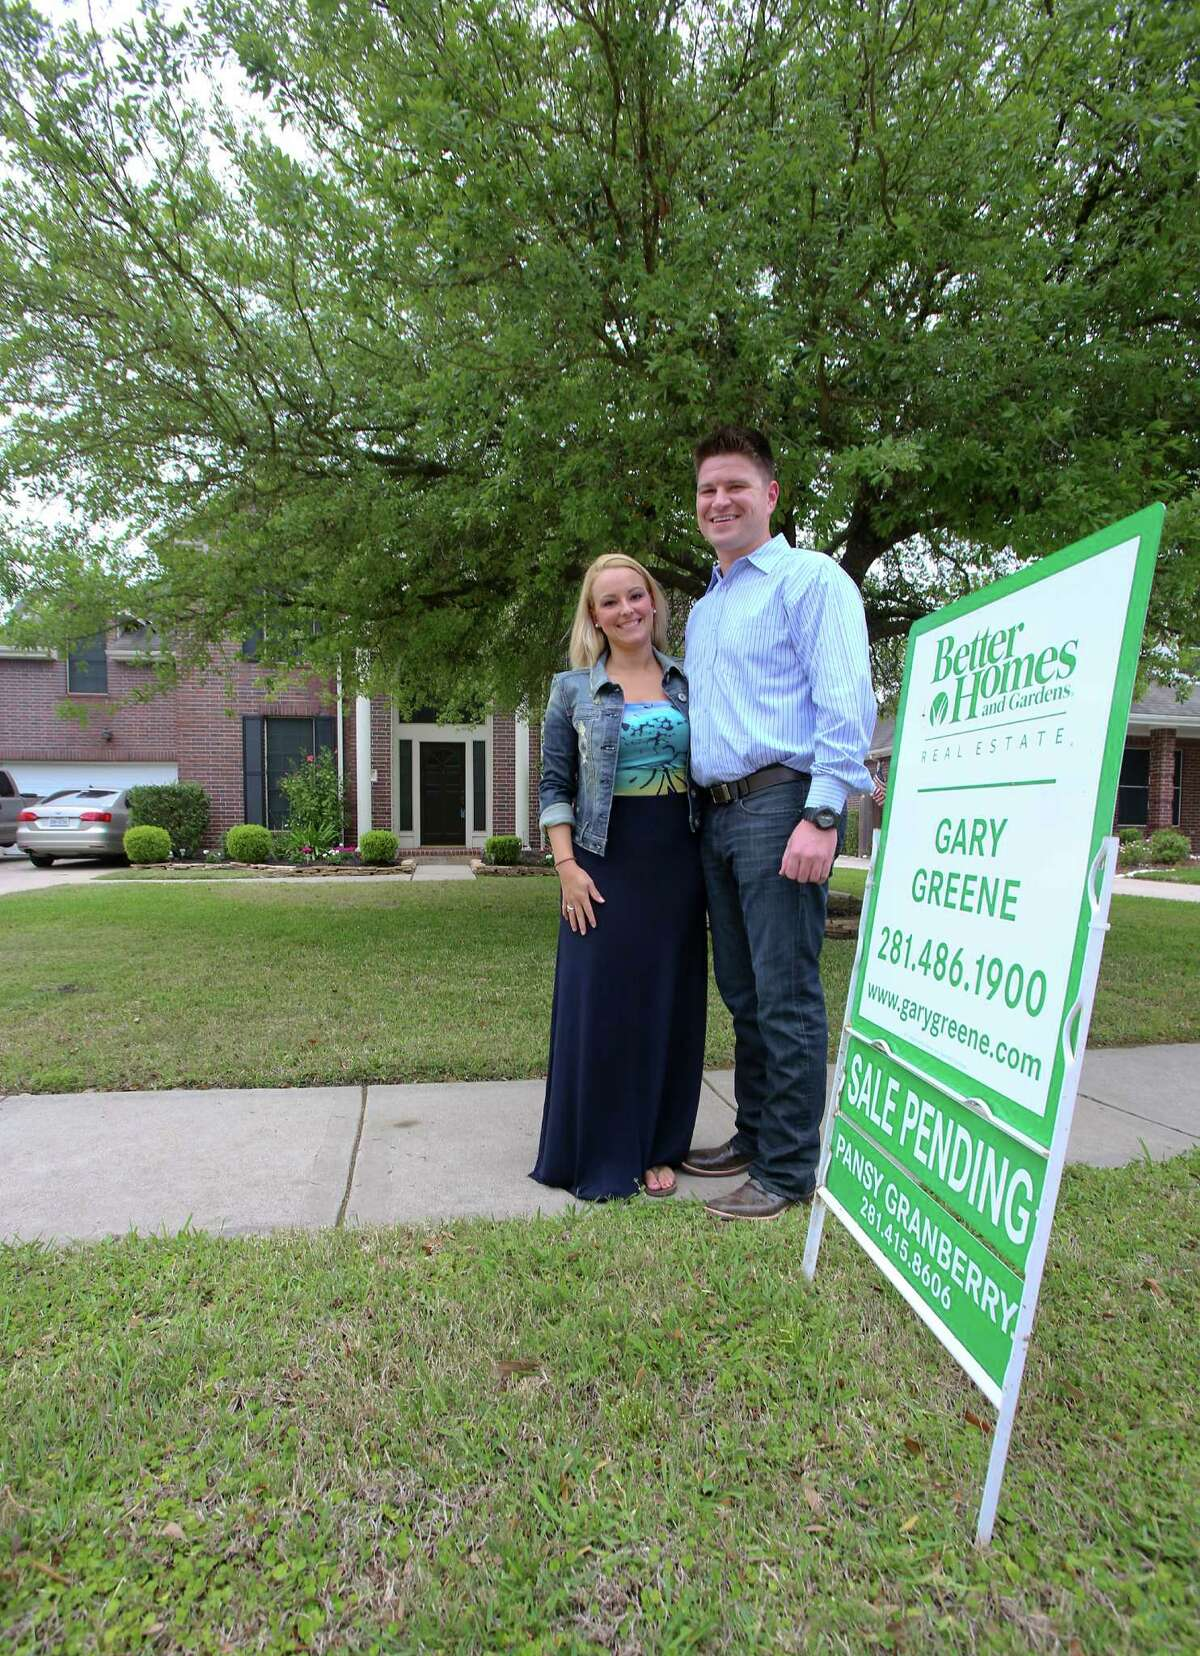 4/9/13: Nathan Cloutier age 33 and girlfriend Christina Aten age 28 in front of their newly purchased home in Pearland, Texas. Nathan is part of a young generation of buyers that are taking the leap into homeownership The two moved from an apartment in Clear Lake, Texas.